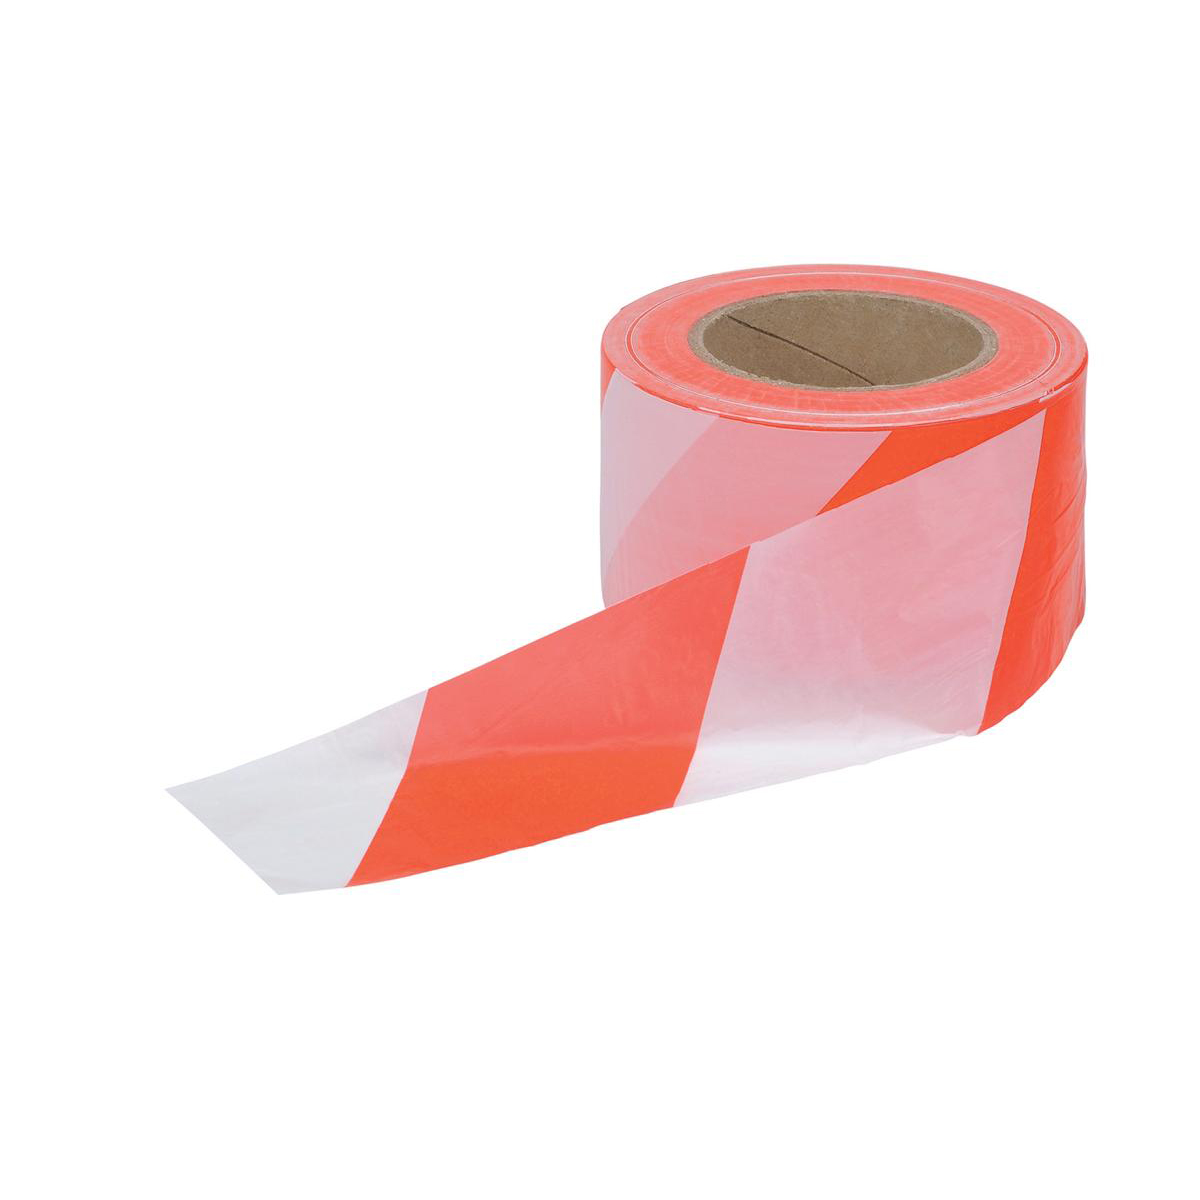 Printed & Coloured Tape 5 Star Office Barrier Tape in Dispenser Box 70mmx500m Red and White